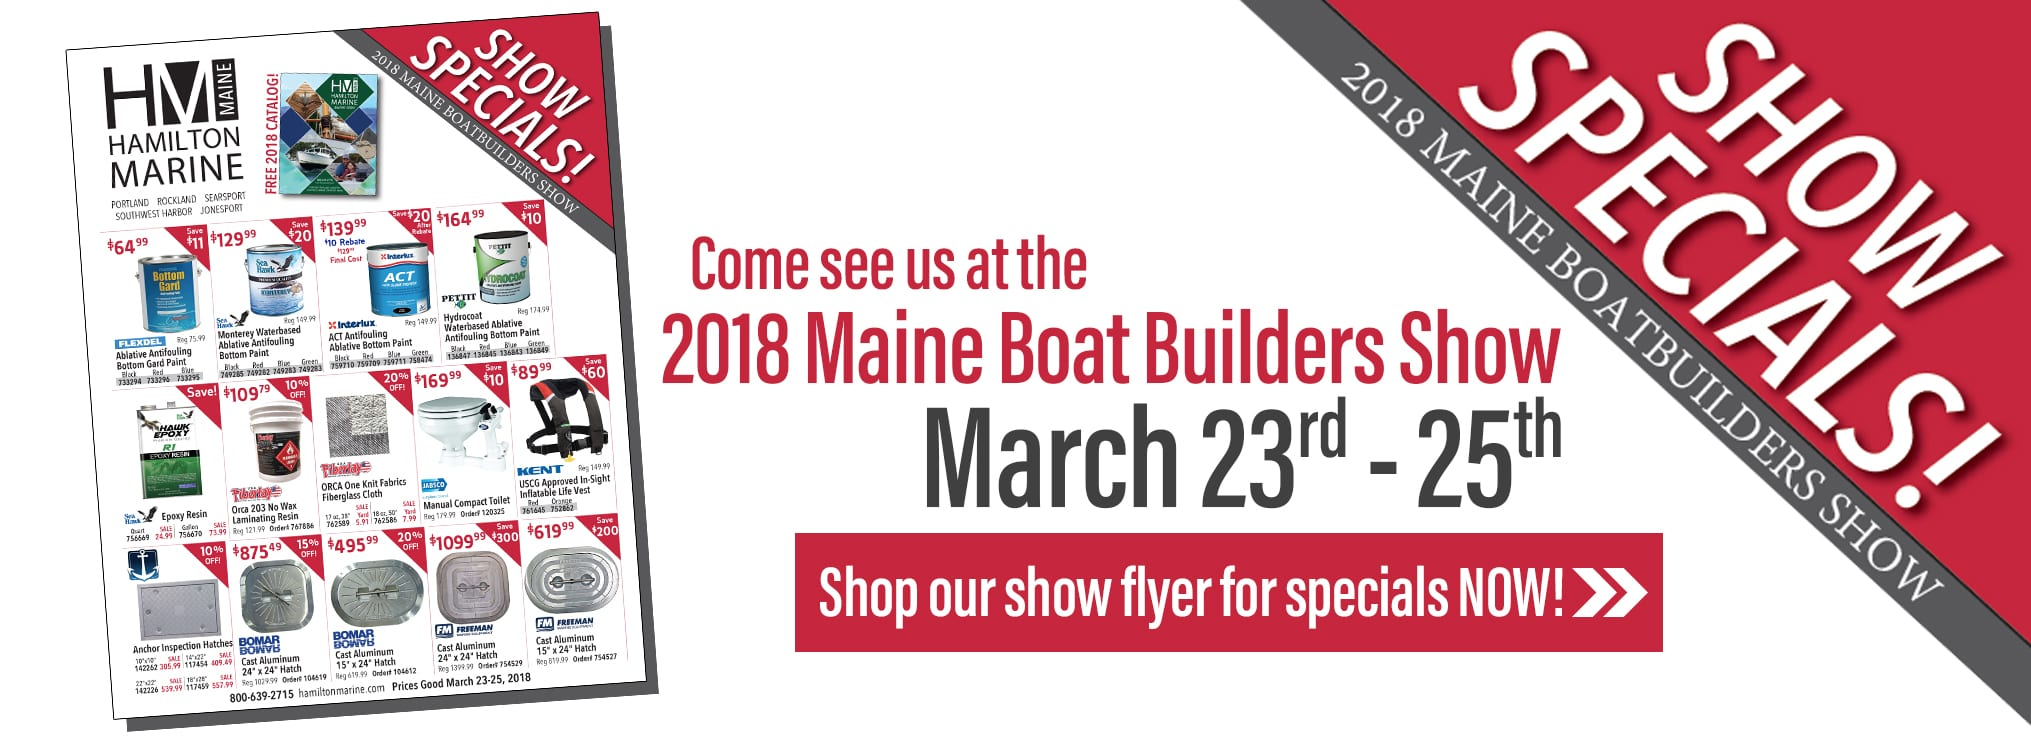 Maine Boat Builders Show Specials!